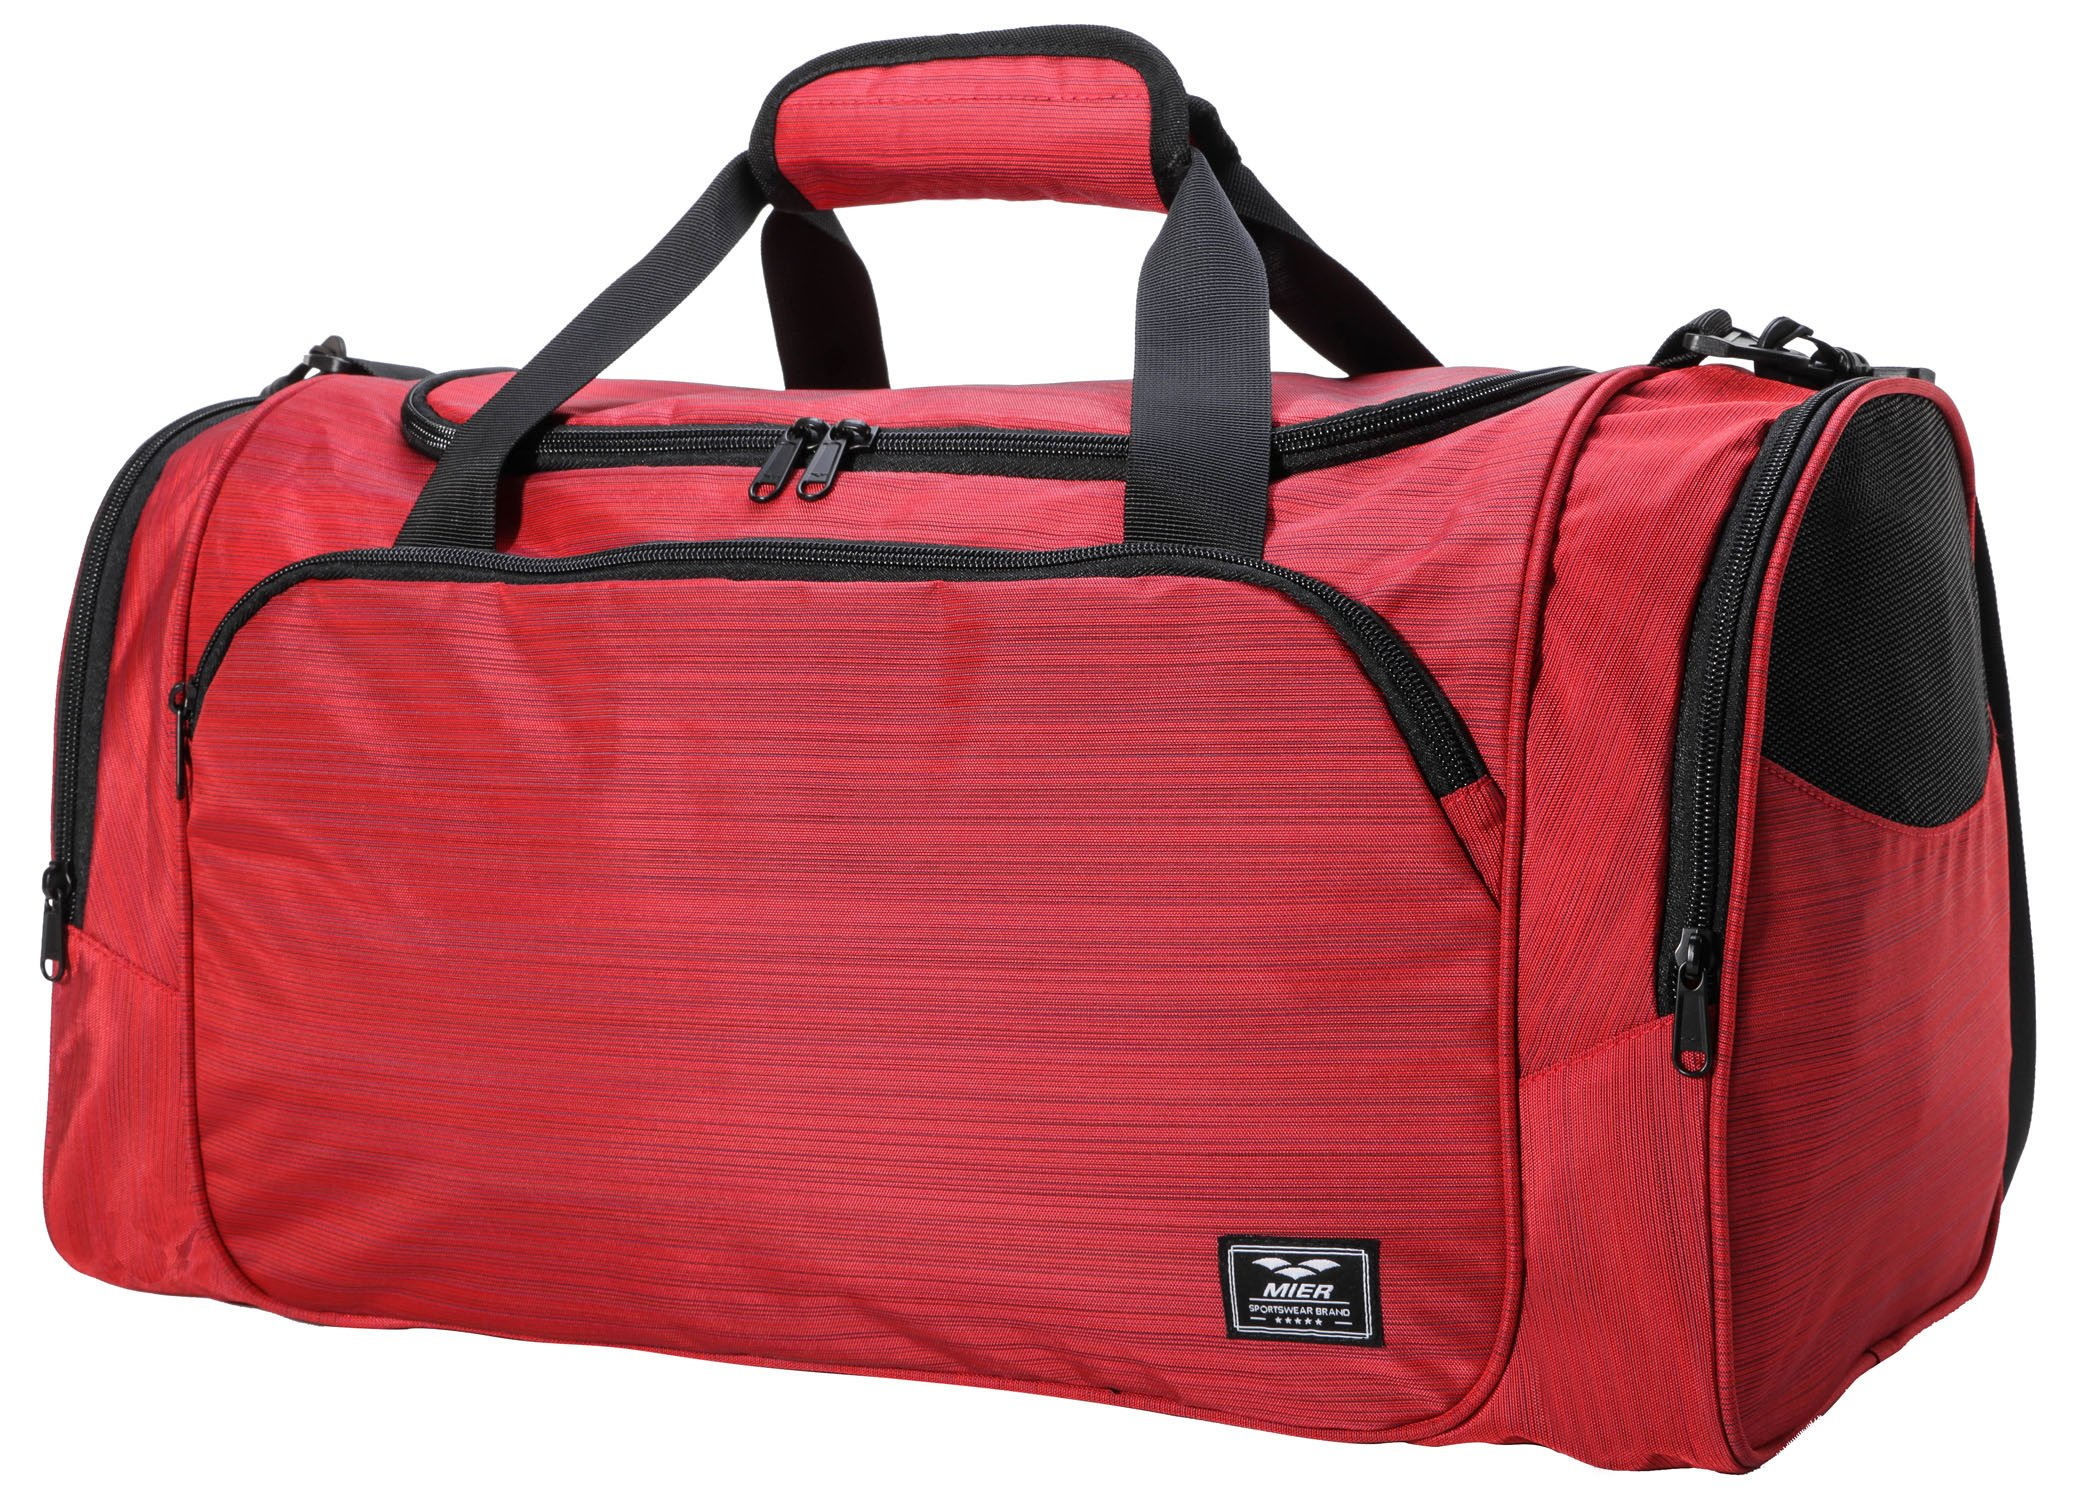 MIER Mens Holdall Gym Bag Sports Duffel Bag with Shoes Compartment for  Weekender, Overnight, Carry on, ... c3cd642f2a